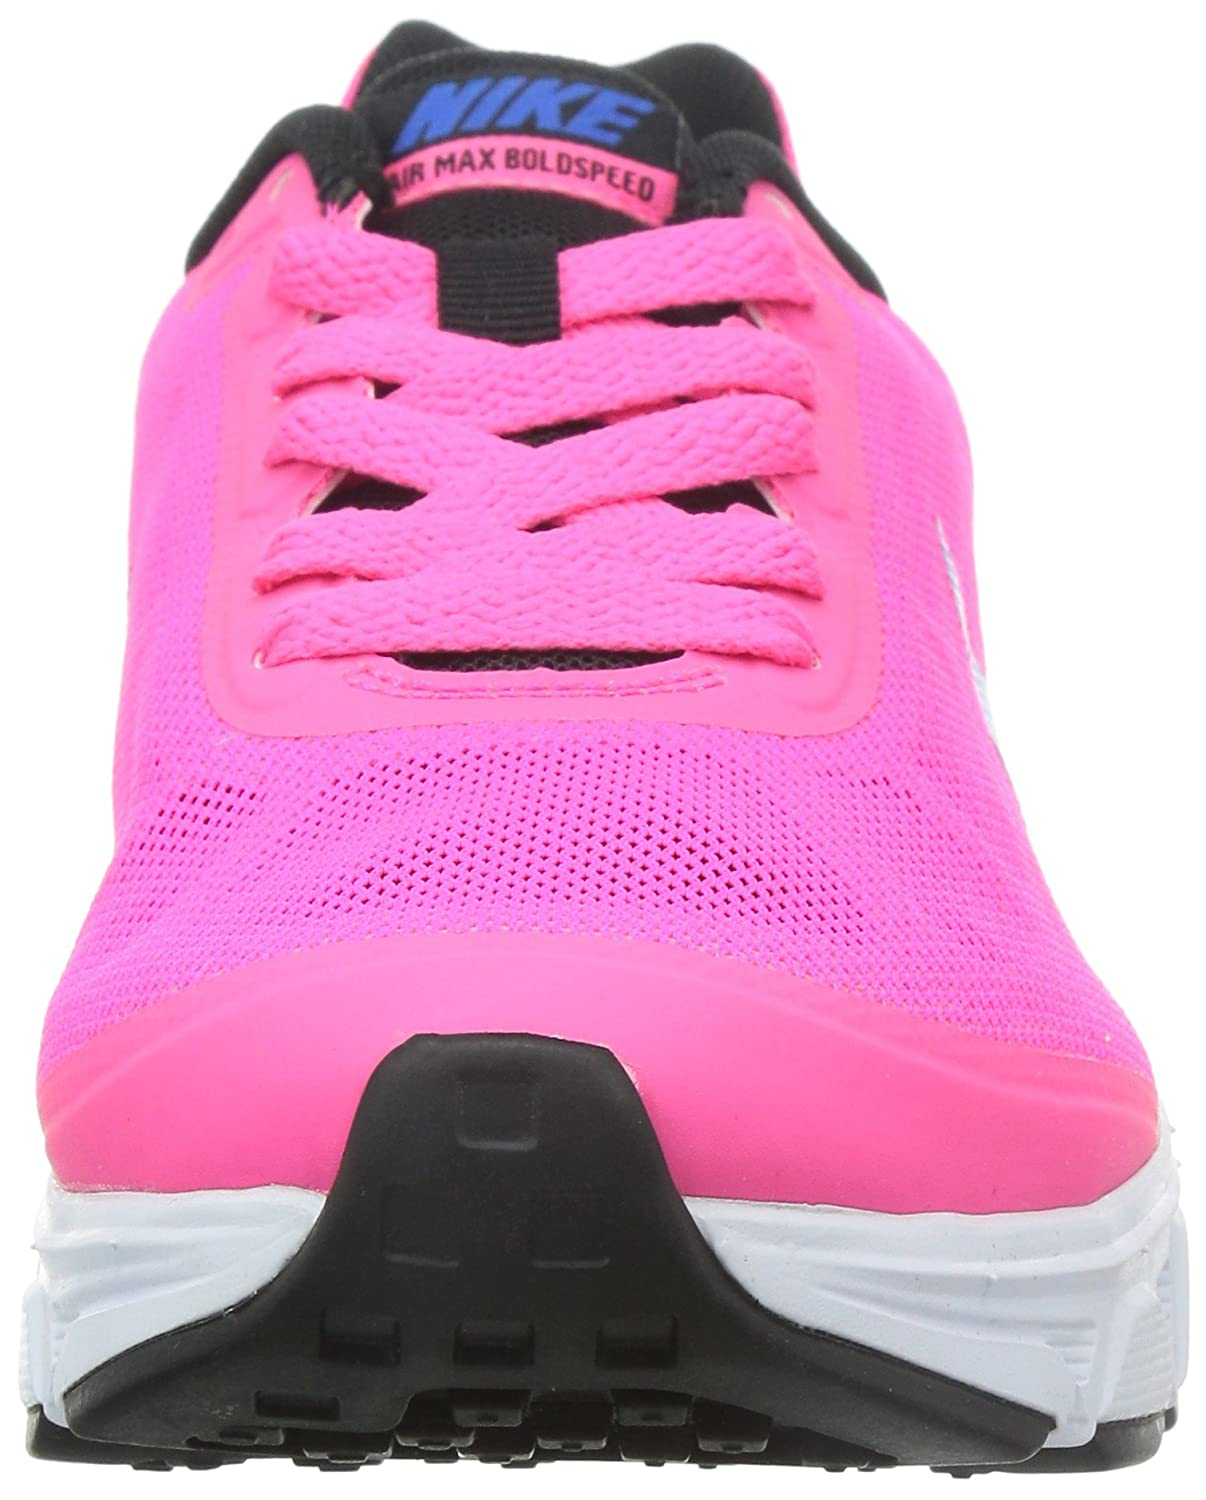 1de088f25713 Nike Womens Air Max Boldspeed Running Shoes Hyper Pink Hyper Cobalt 654899  600  Amazon.co.uk  Shoes   Bags